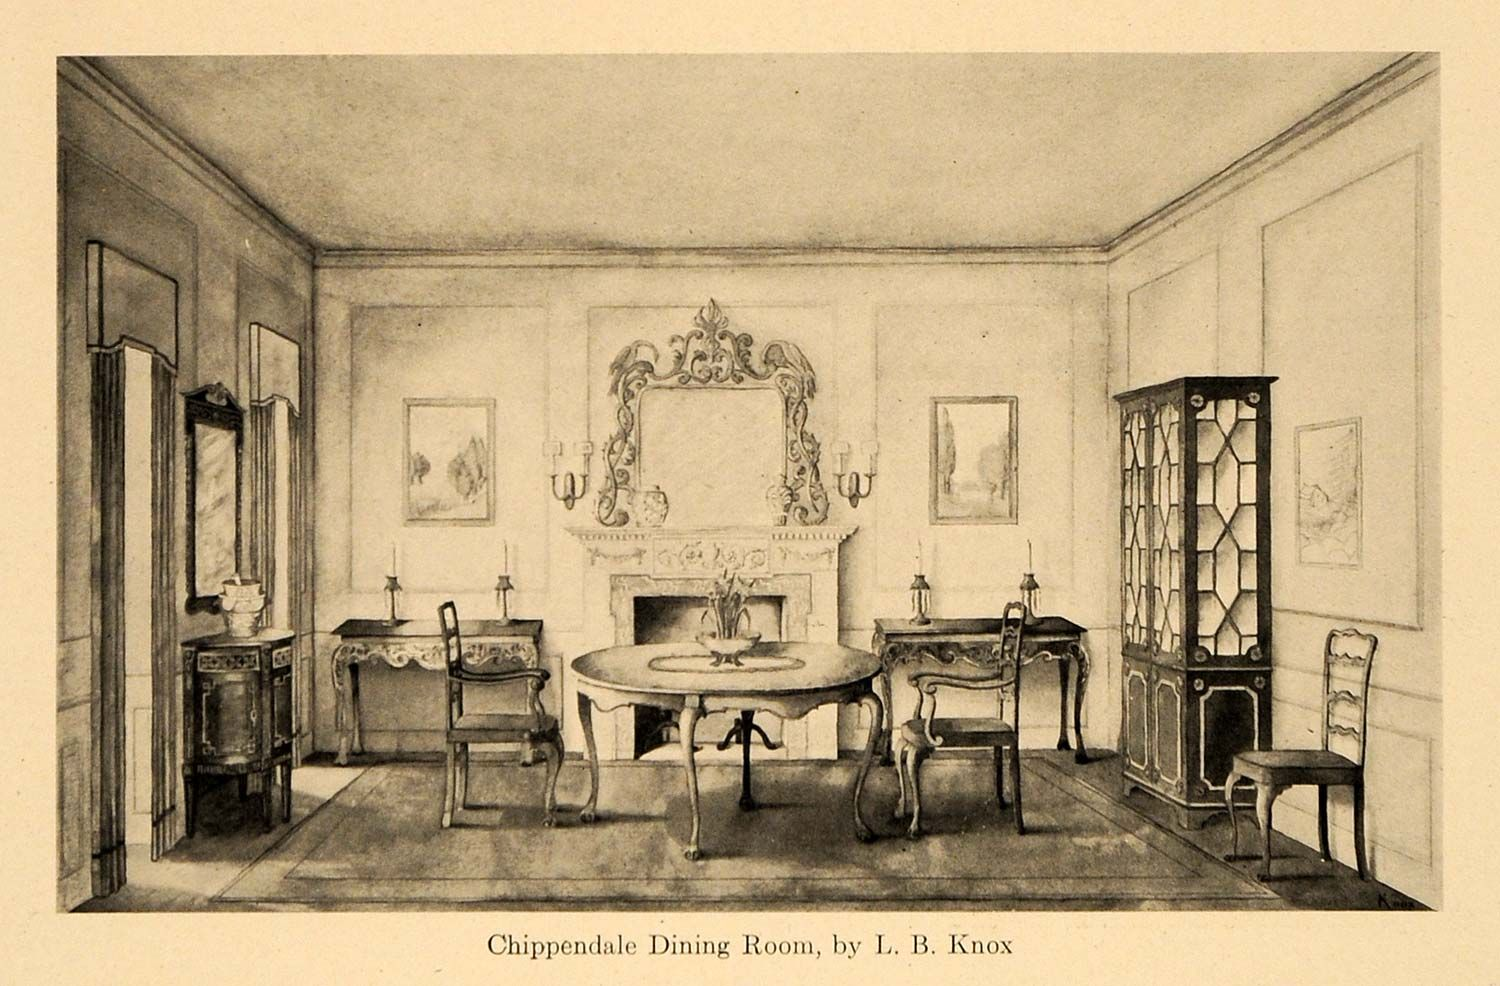 1920s Dining Room Furniture 1920 Print Chippendale Furniture Dining Room L B Knox Dining Room Design Chippendale Furniture Interior Design